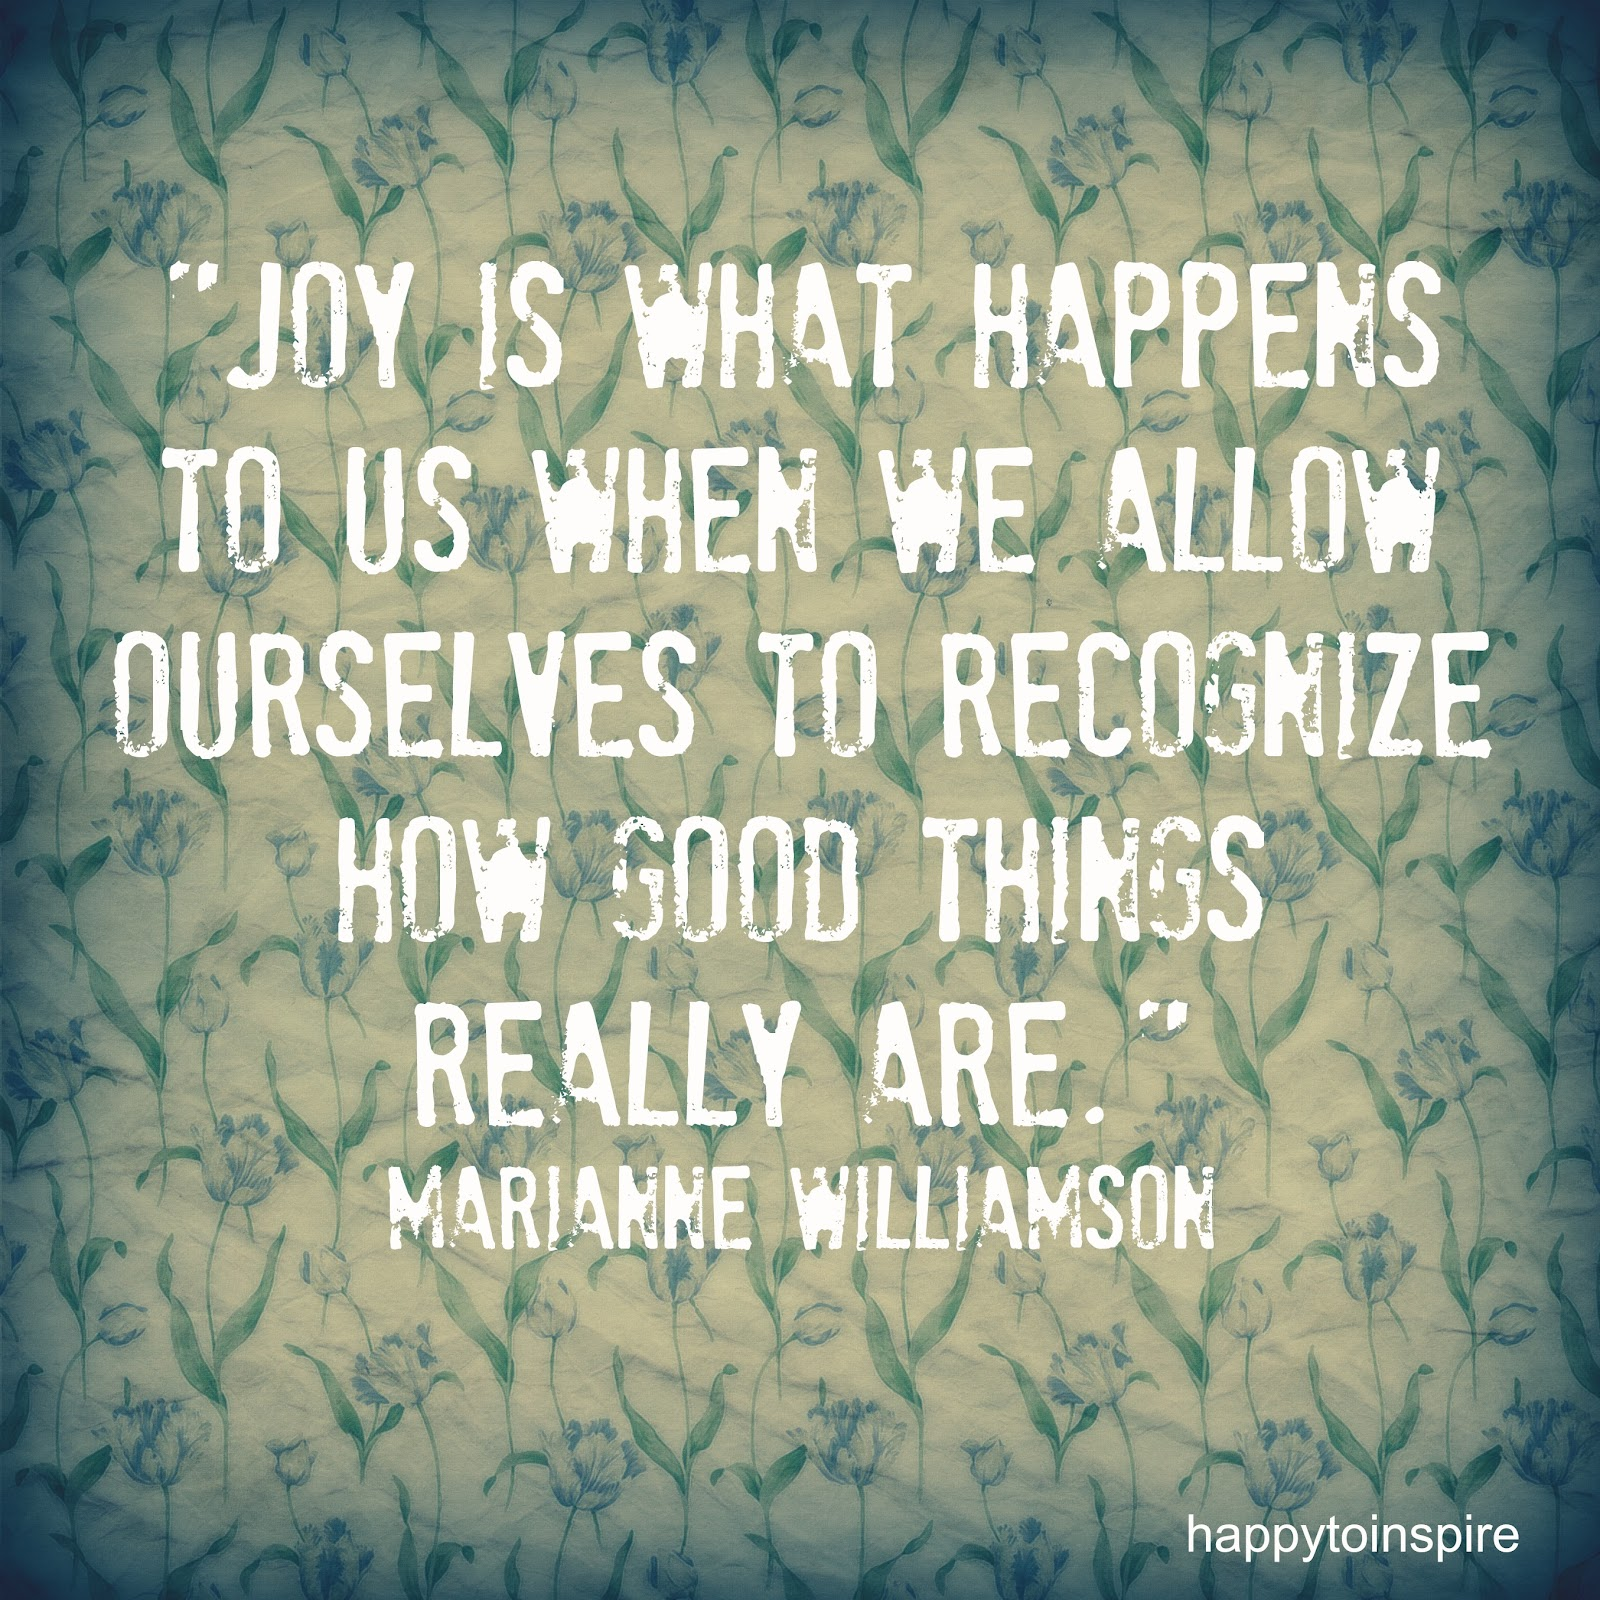 Words Of Inspiration Quotes Happy To Inspire Joy Is What Happens To Us When We Allow